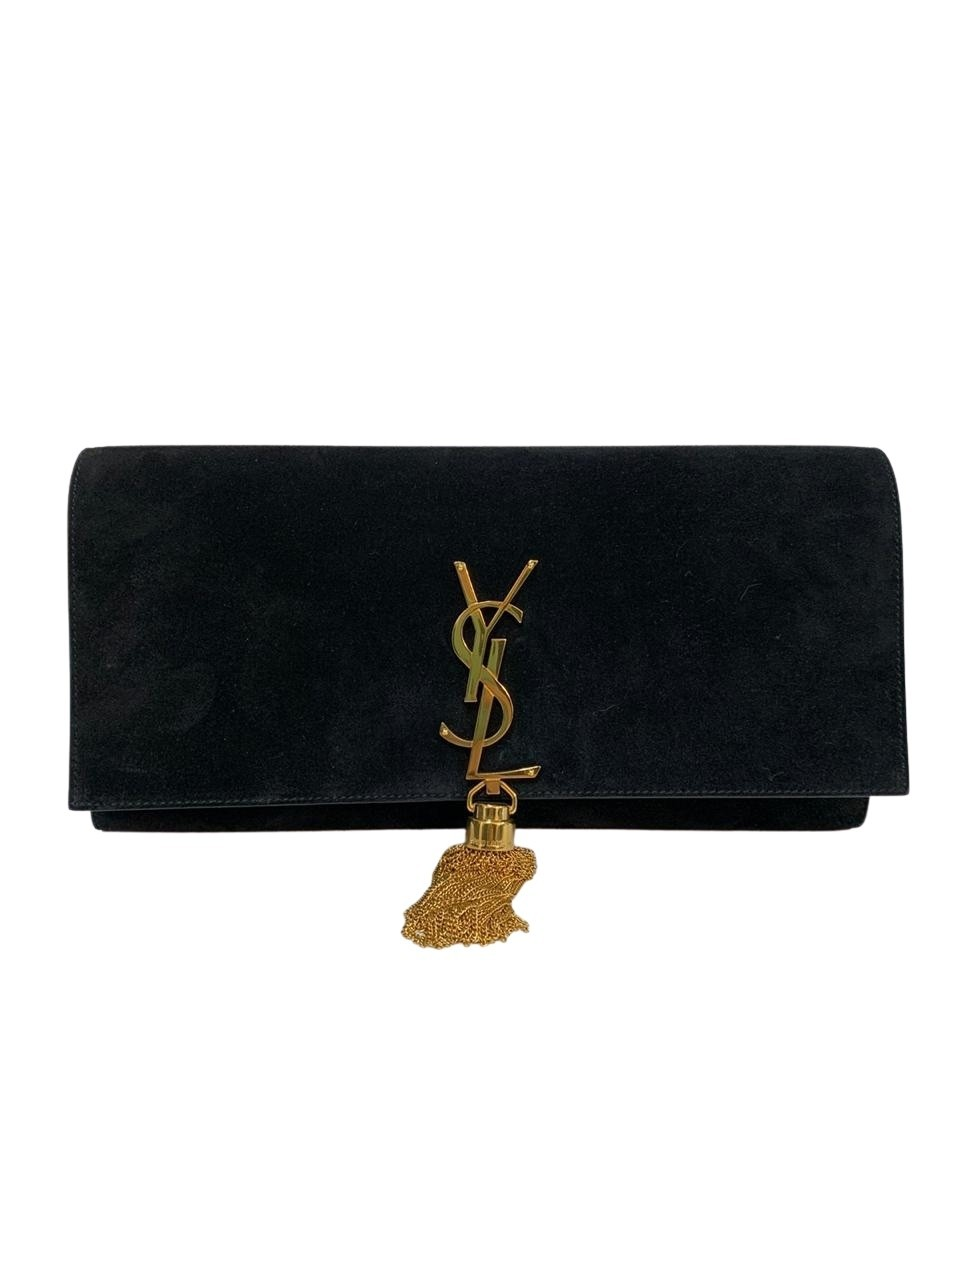 Clutch Yves Saint Laurent Kate Preta